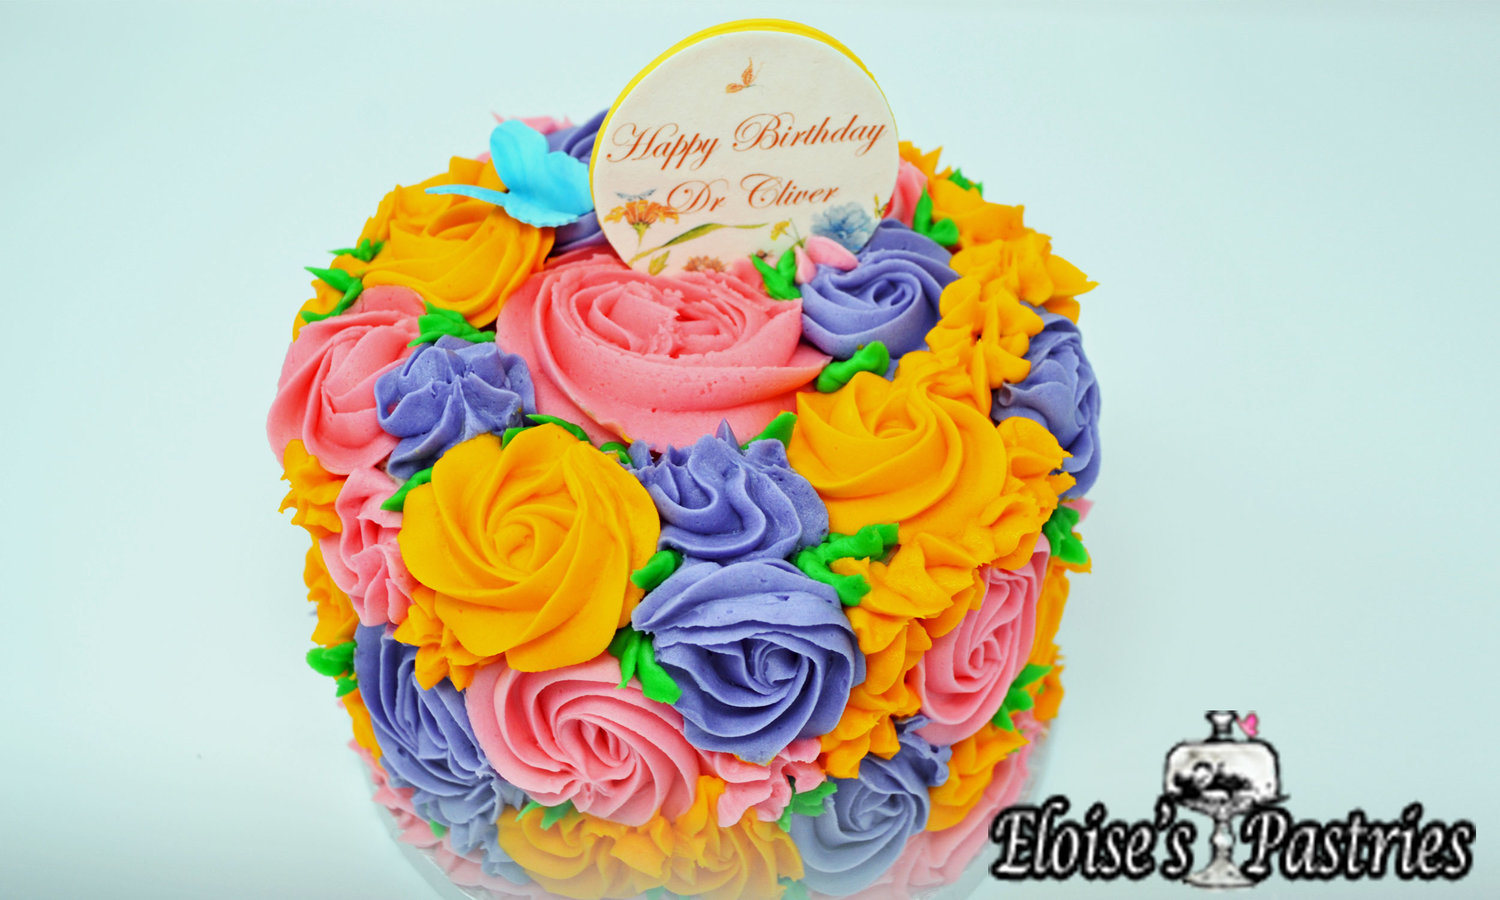 Birthday cakes gallery eloises pastries all over floral cake izmirmasajfo